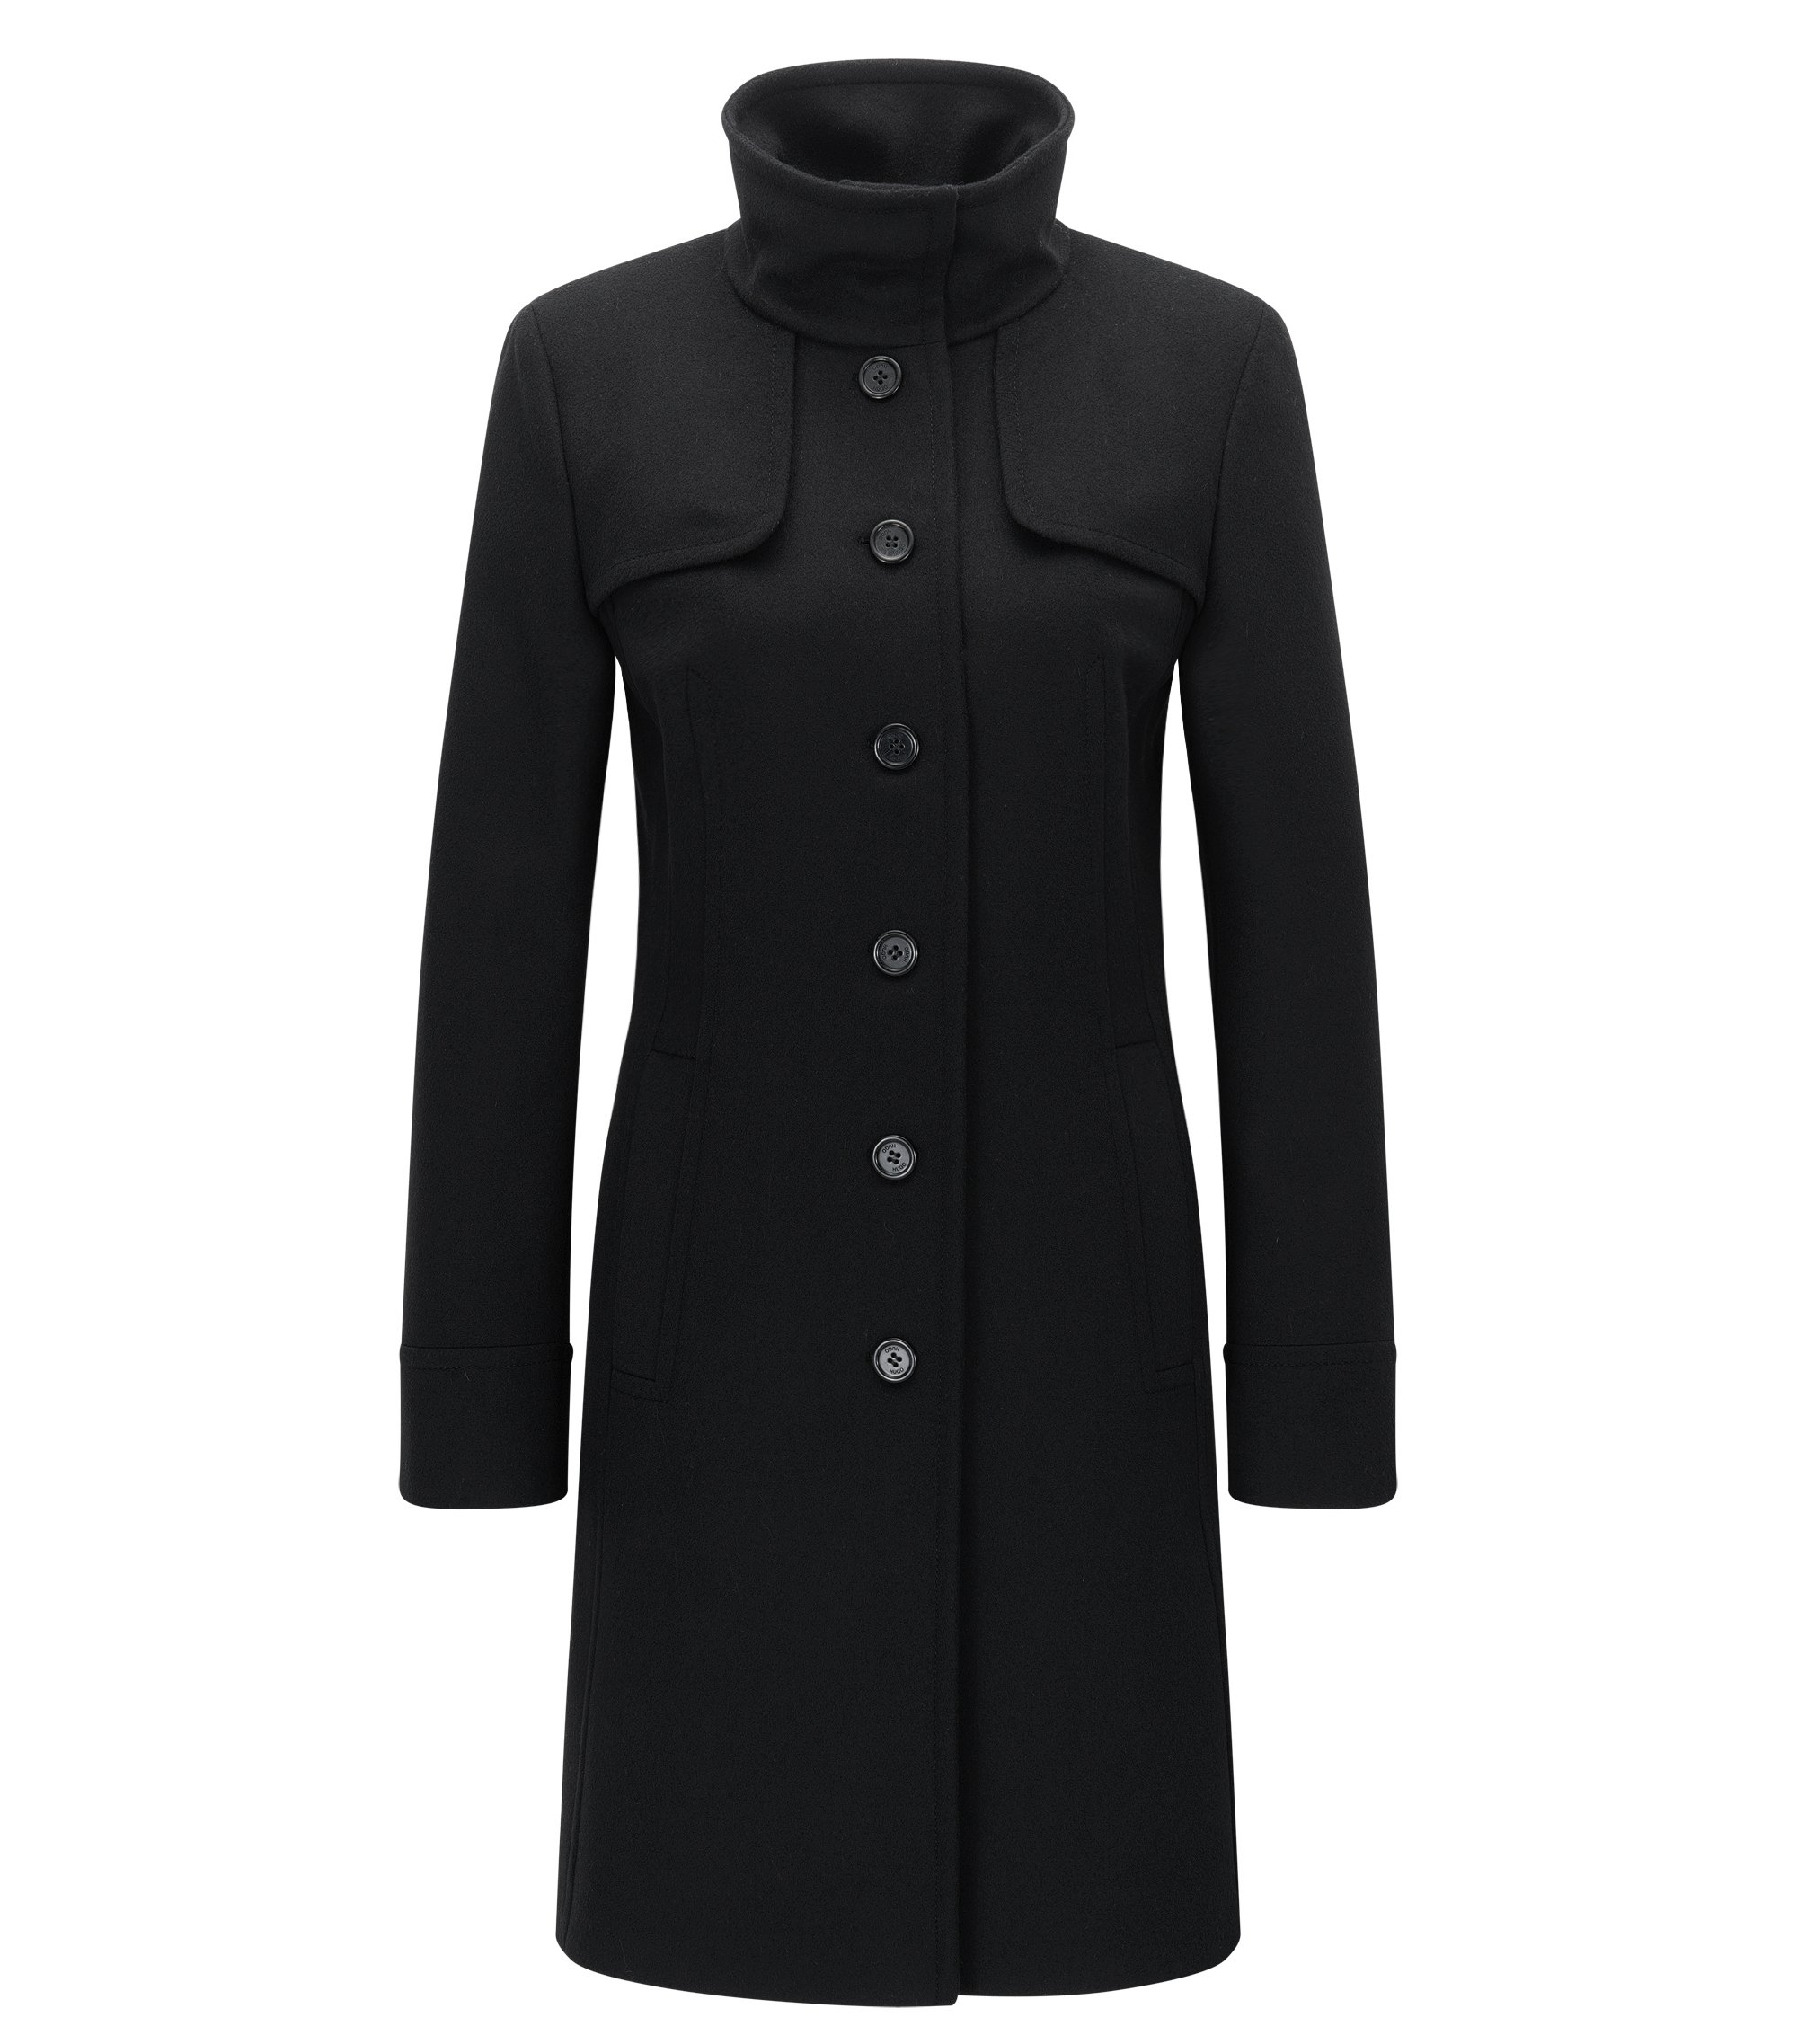 High Collar Virgin Wool Cashmere Coat | Mibelli, Black